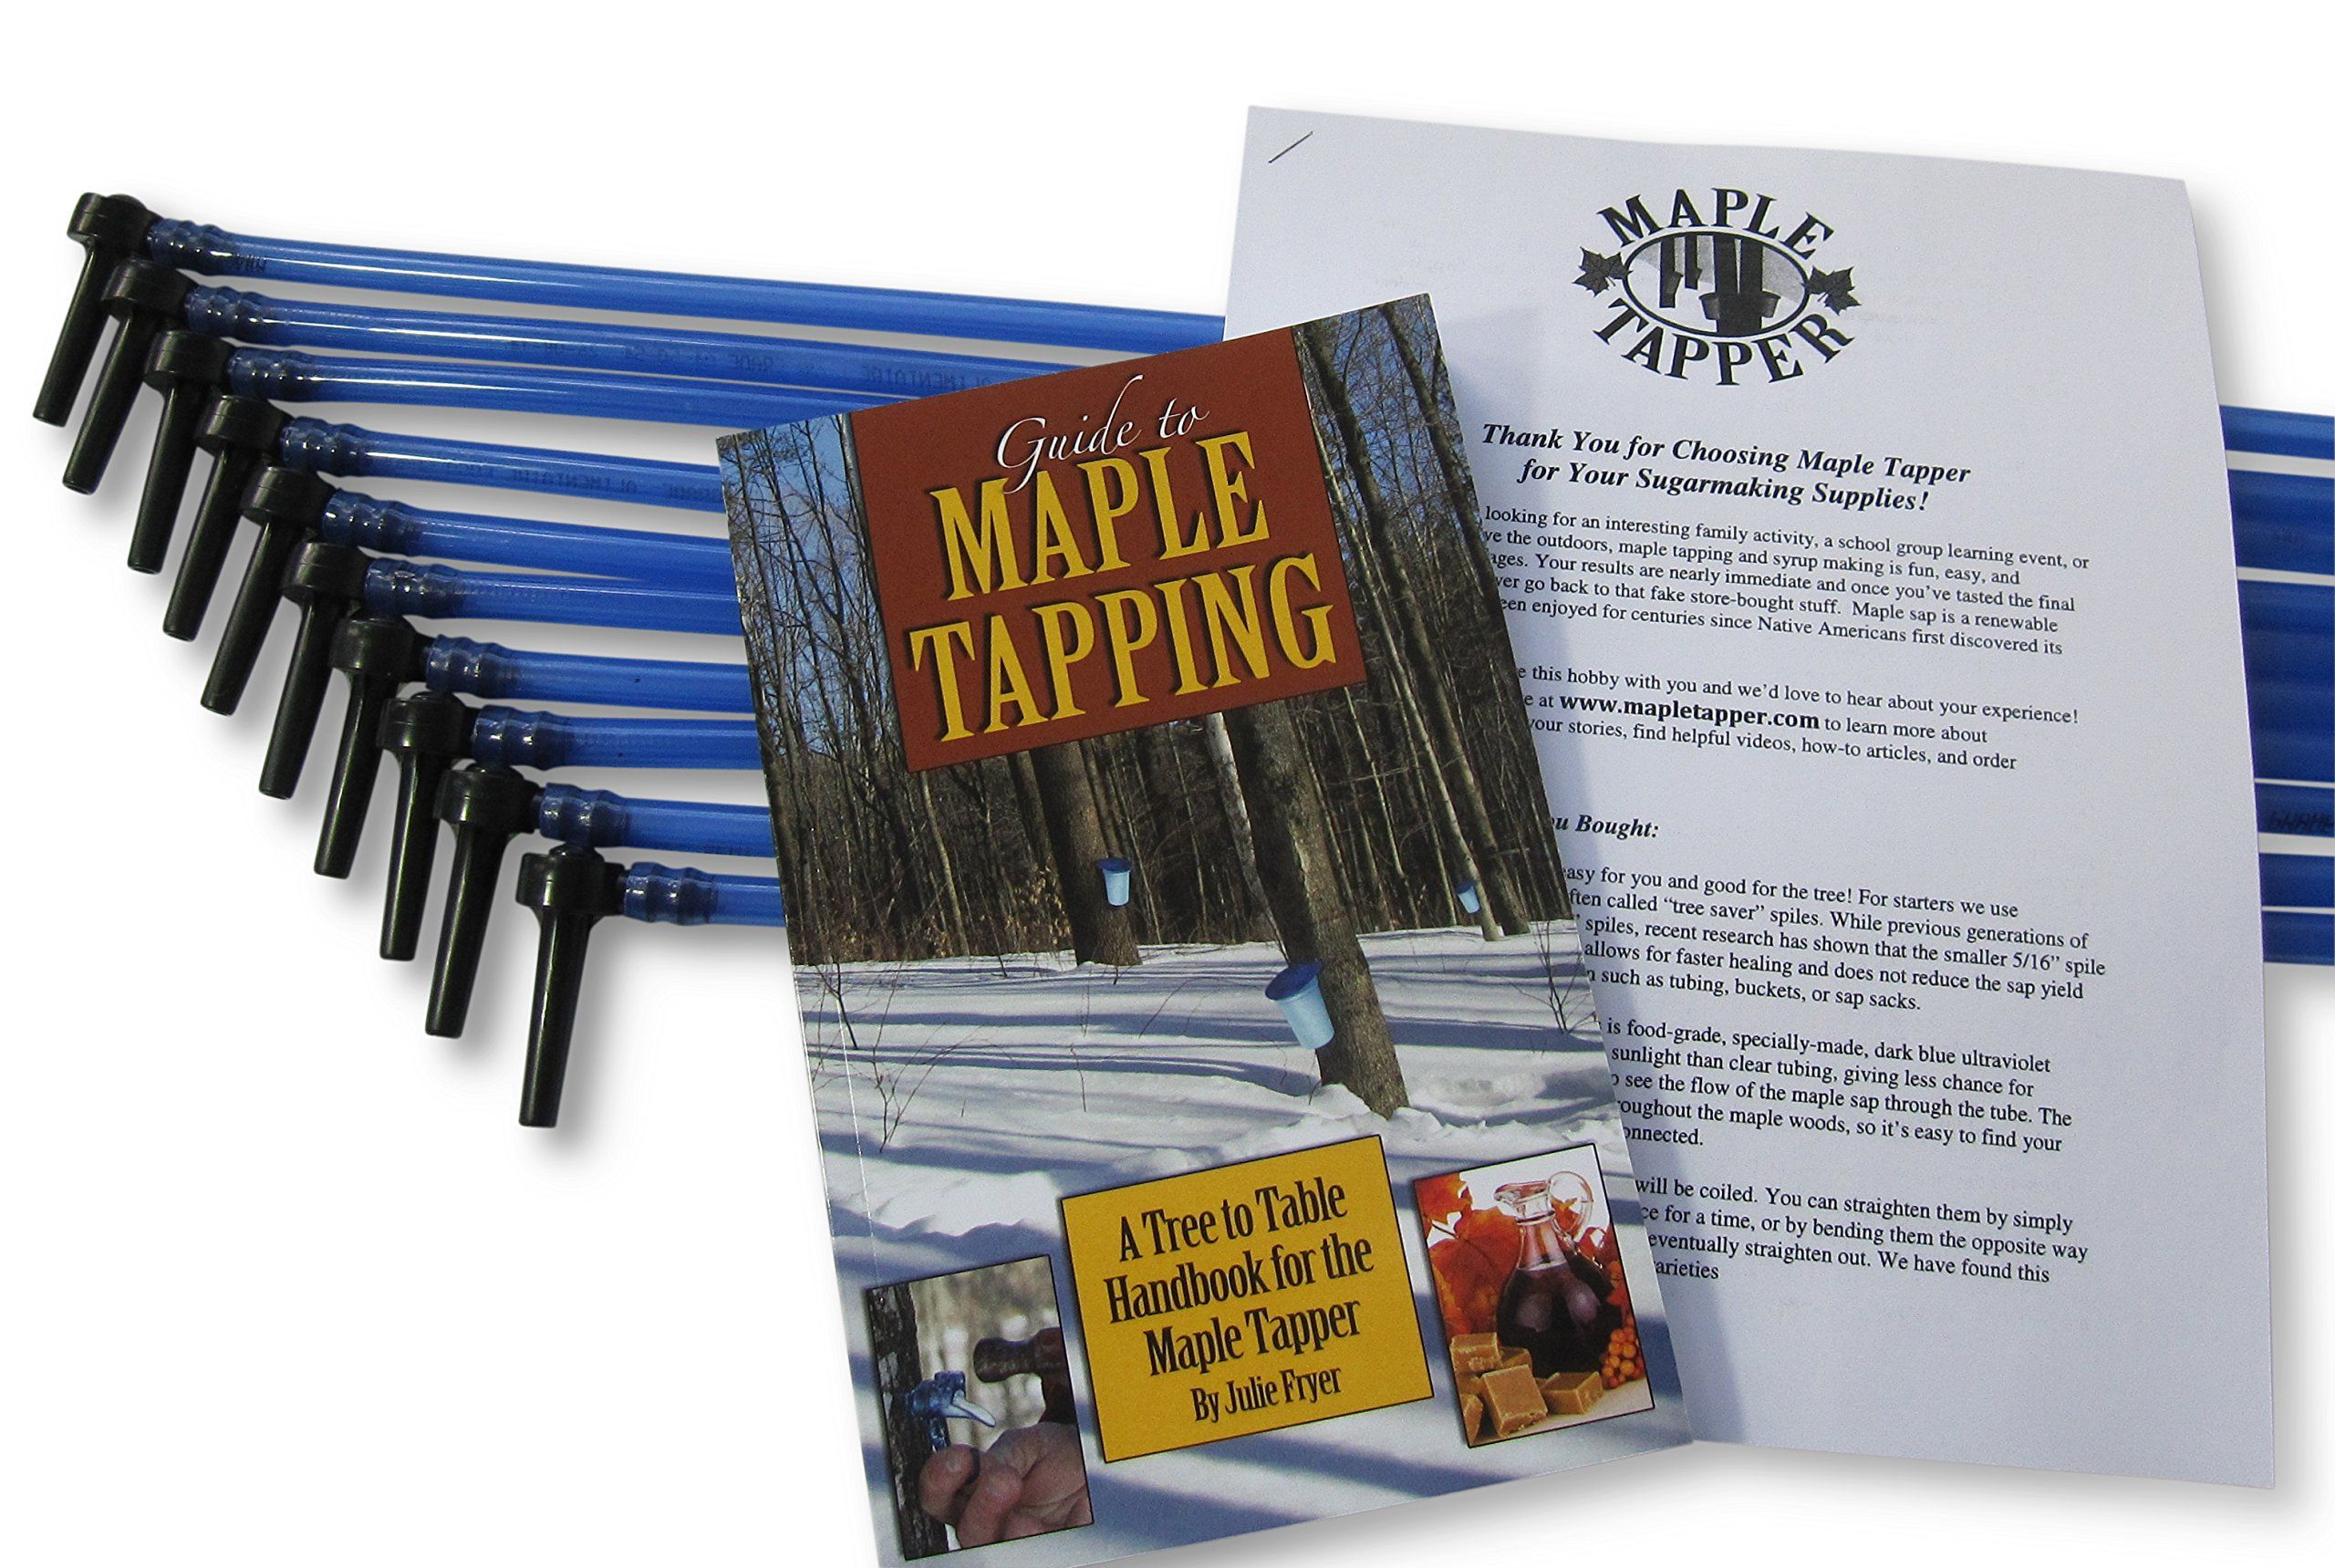 tap 10 maple trees with this simple kit maple sap is the 1st rh pinterest com simple guide to medicare Japanese Maple